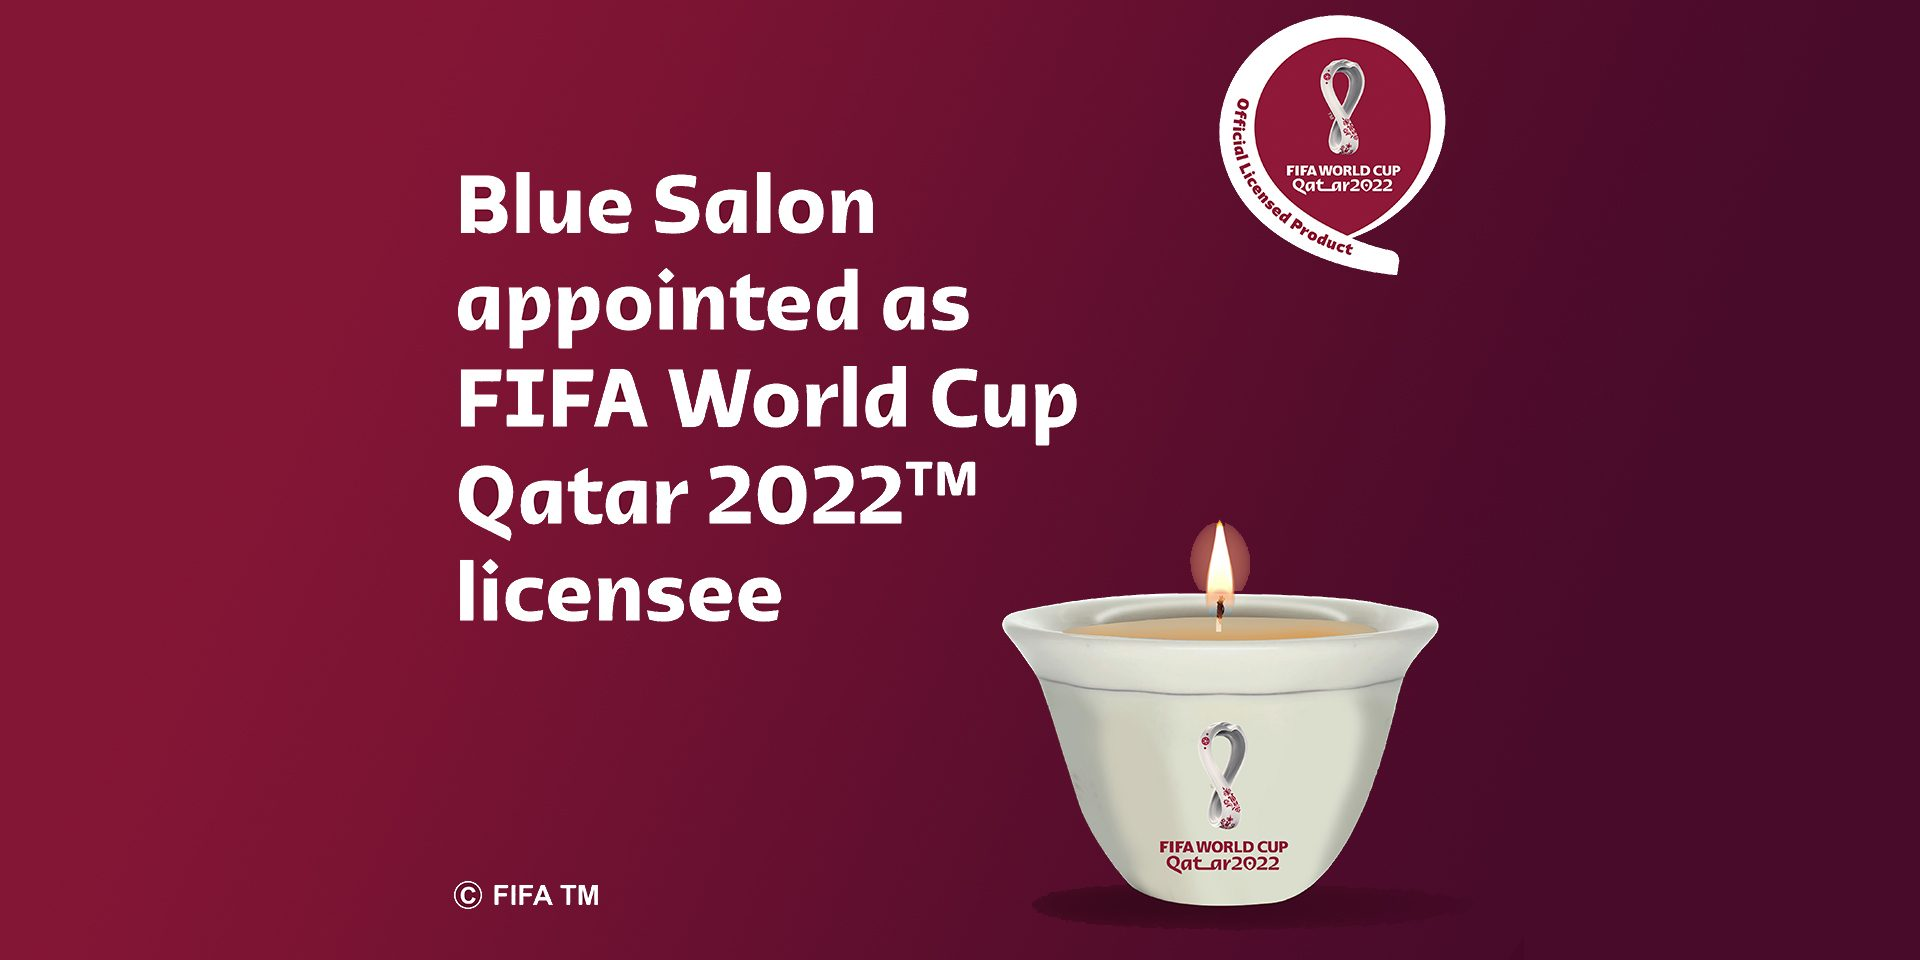 FIFA grants Blue Salon official license to sell Qatar 2022 World Cup merchandise